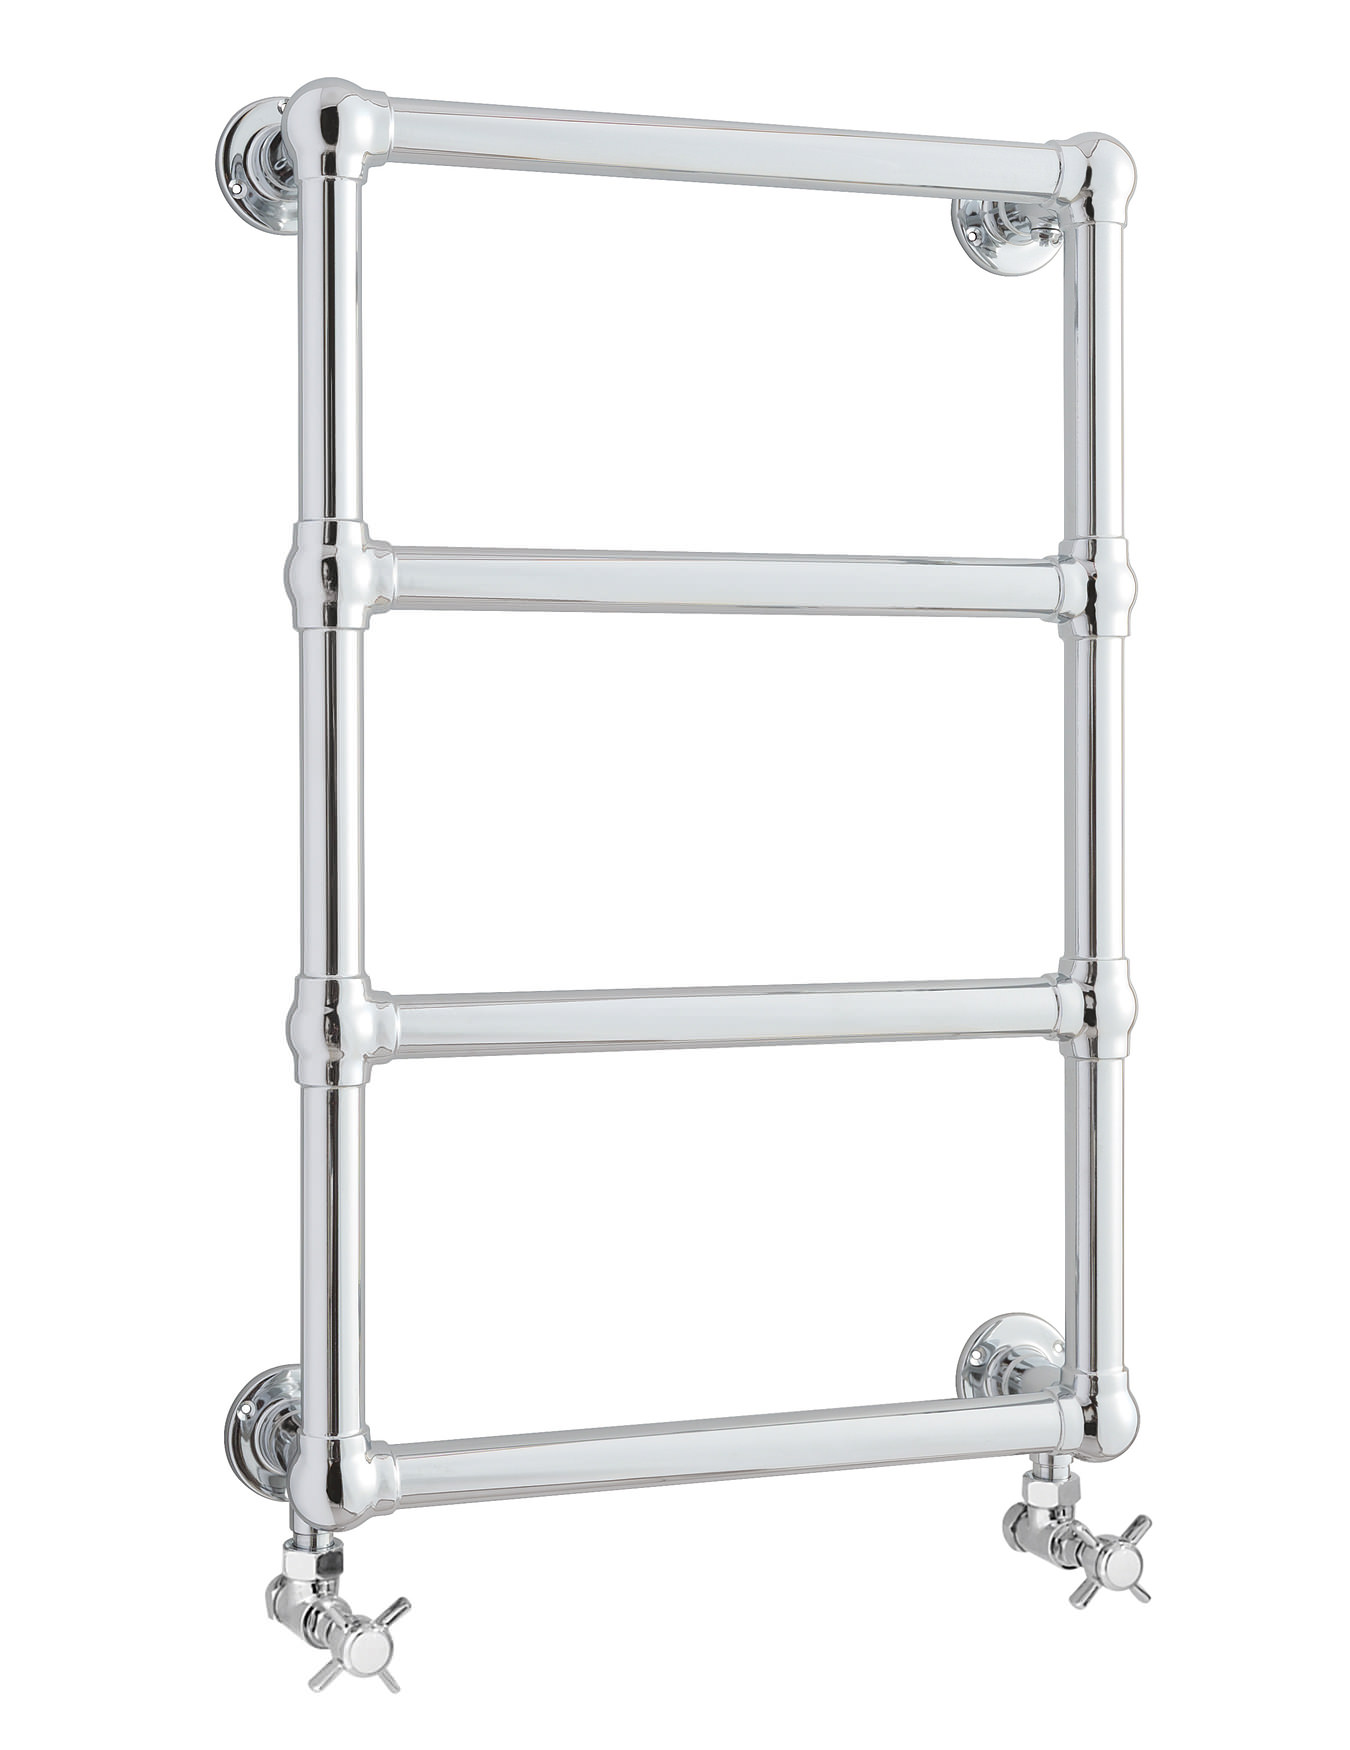 Old London Farringdon 498mm Wall Mounted Heated Towel Rail